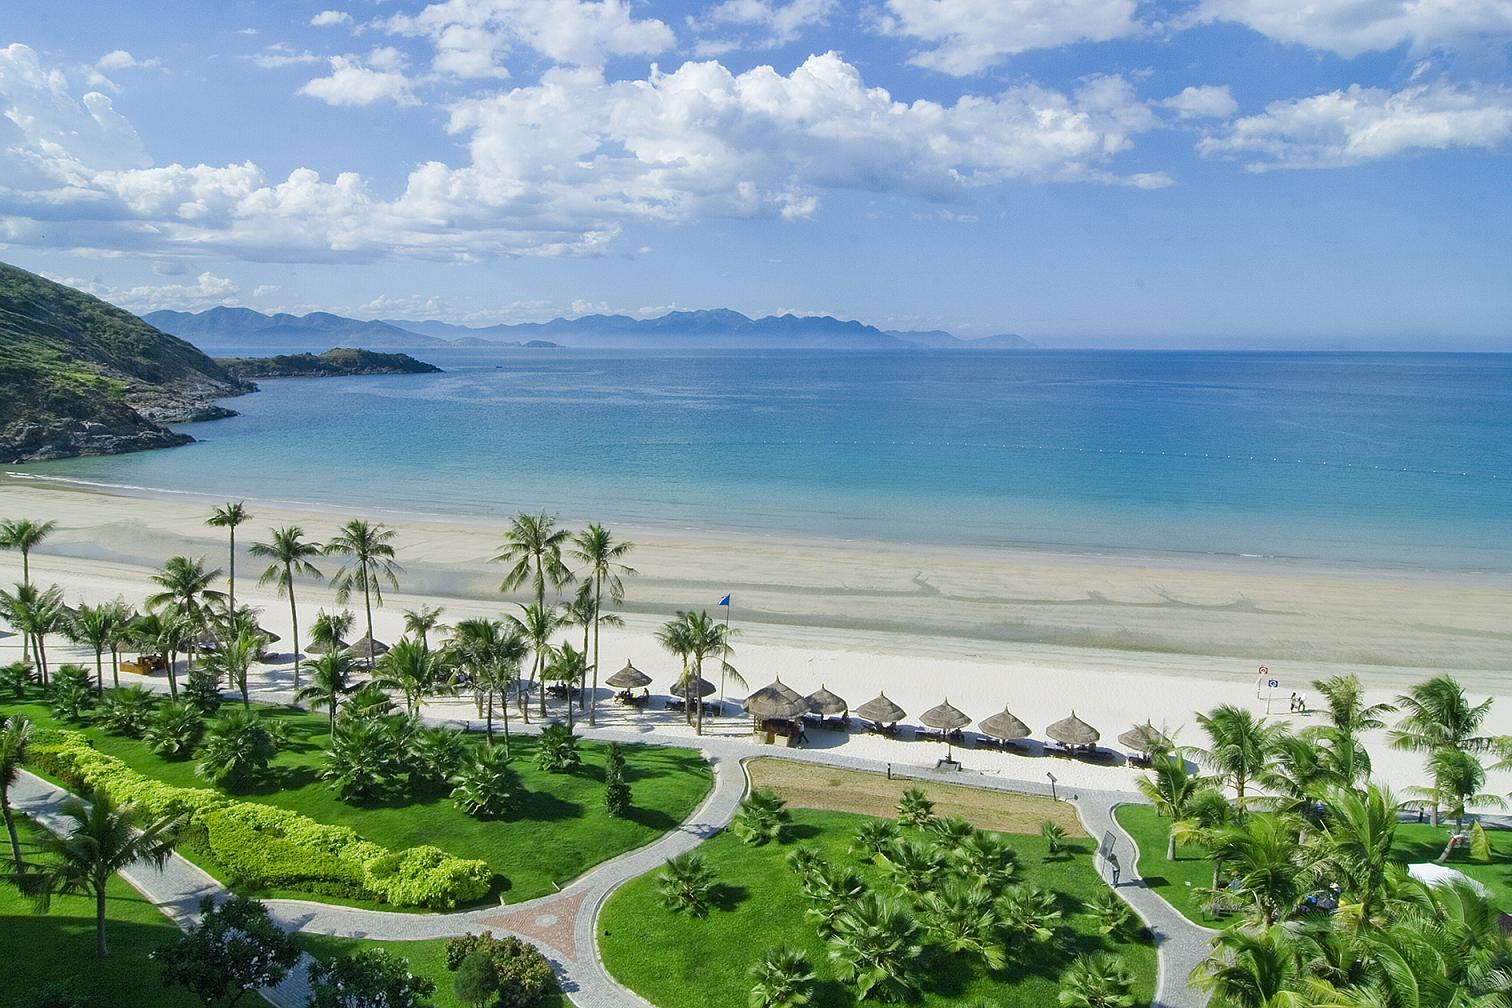 Beautiful beach in Nha Trang city in Vietnam